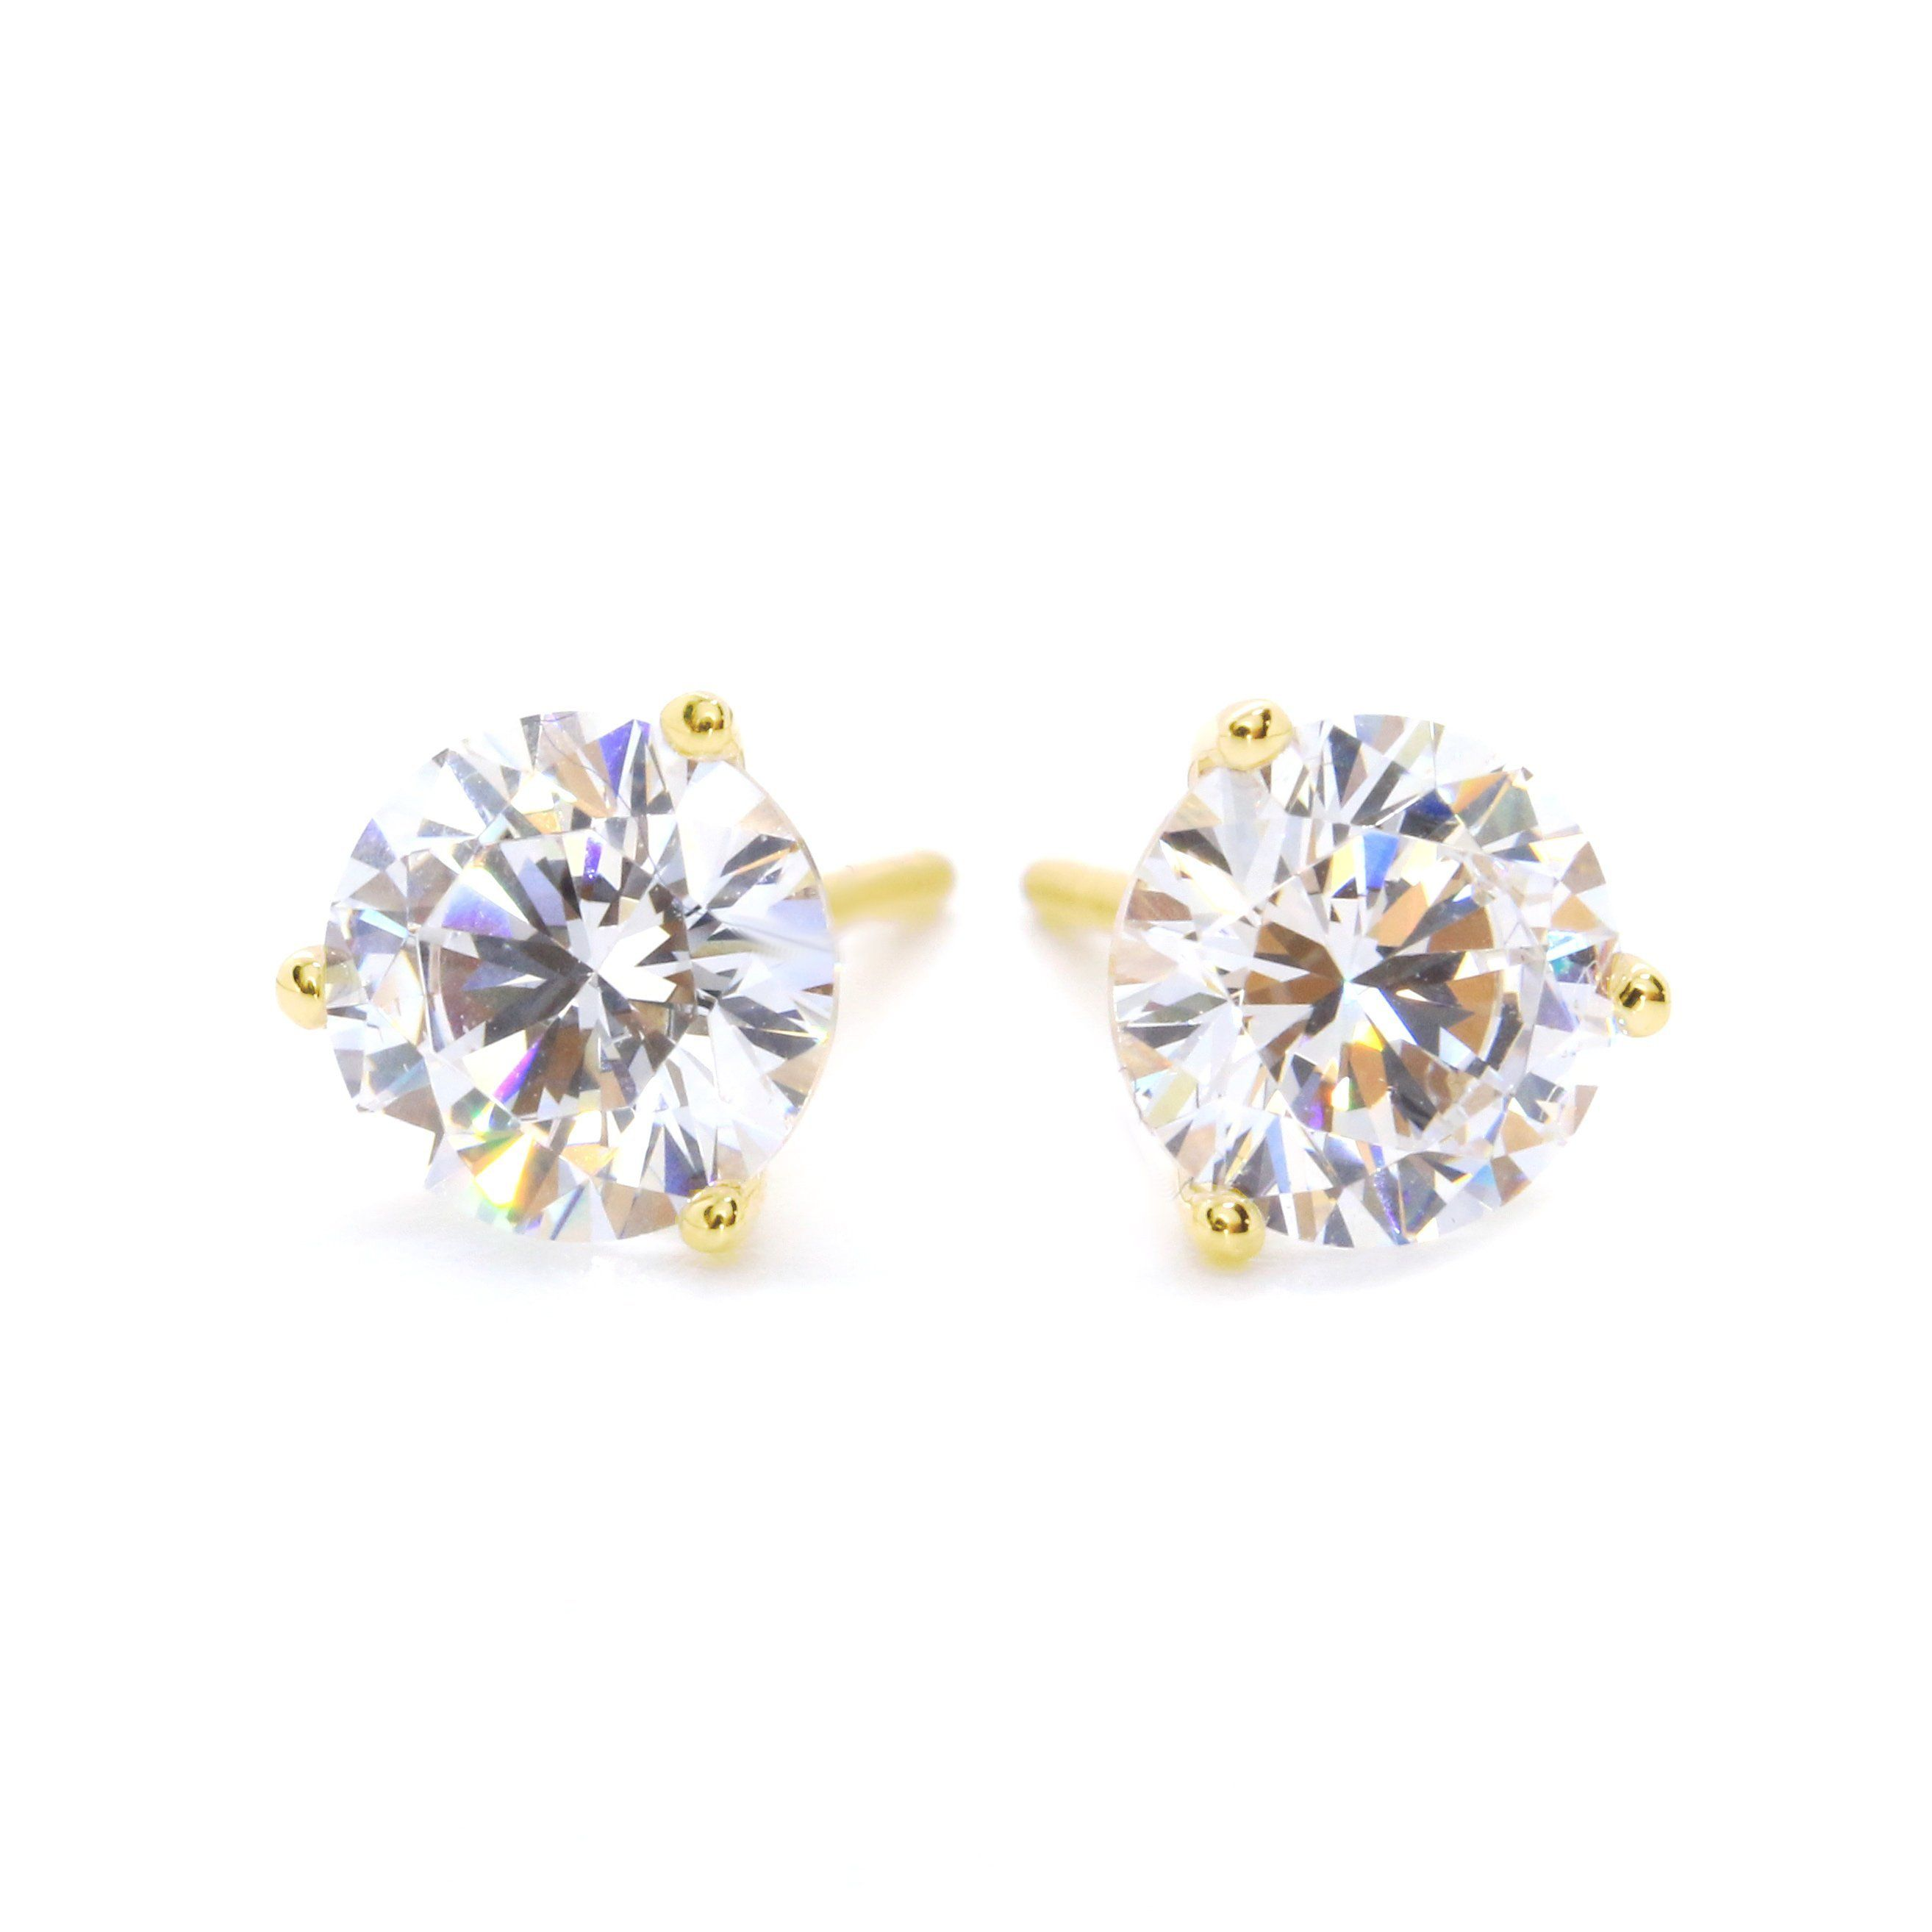 1b905bdf6 1.5 Ct Round Cut Stud Martini Diamond Earrings in Solid 14k Yellow Gold  Screw Back Studs